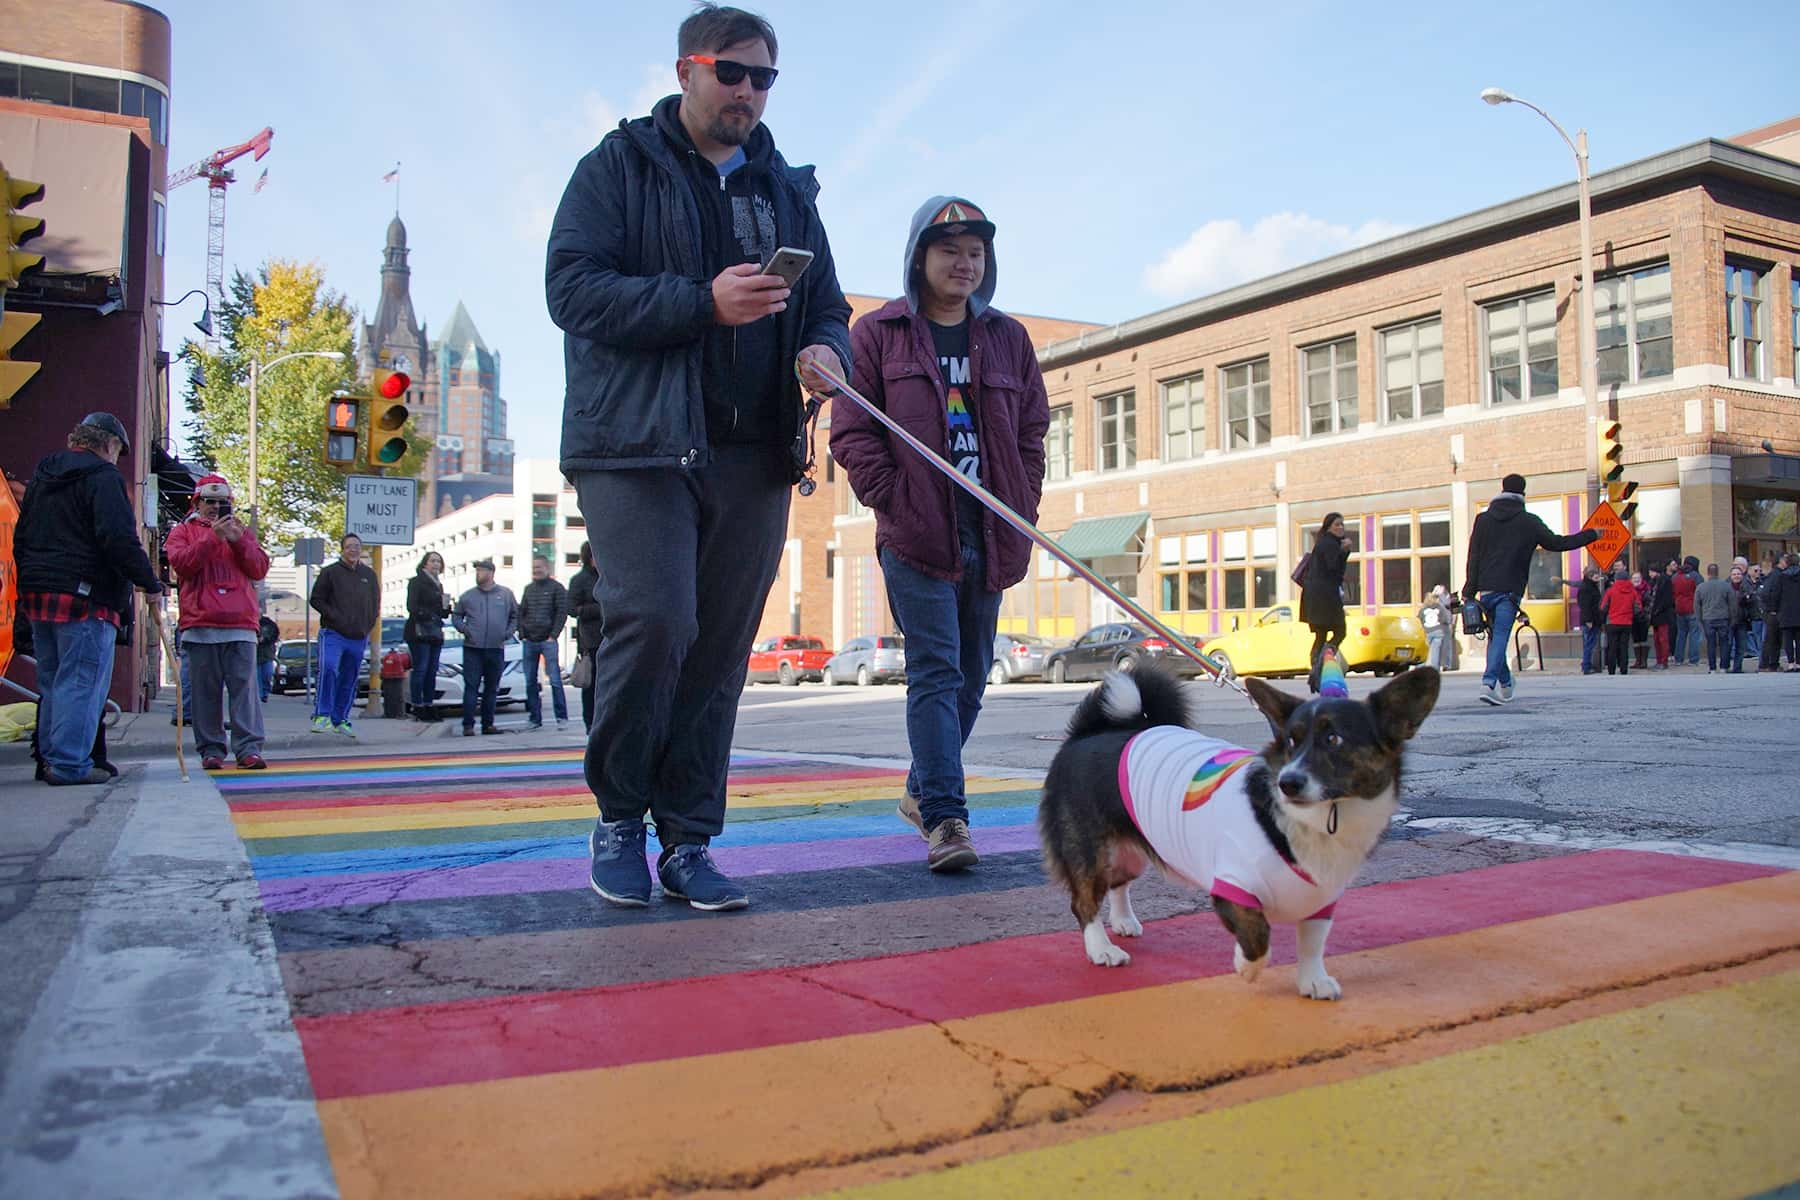 06_110318_rainbowcrosswalk_735